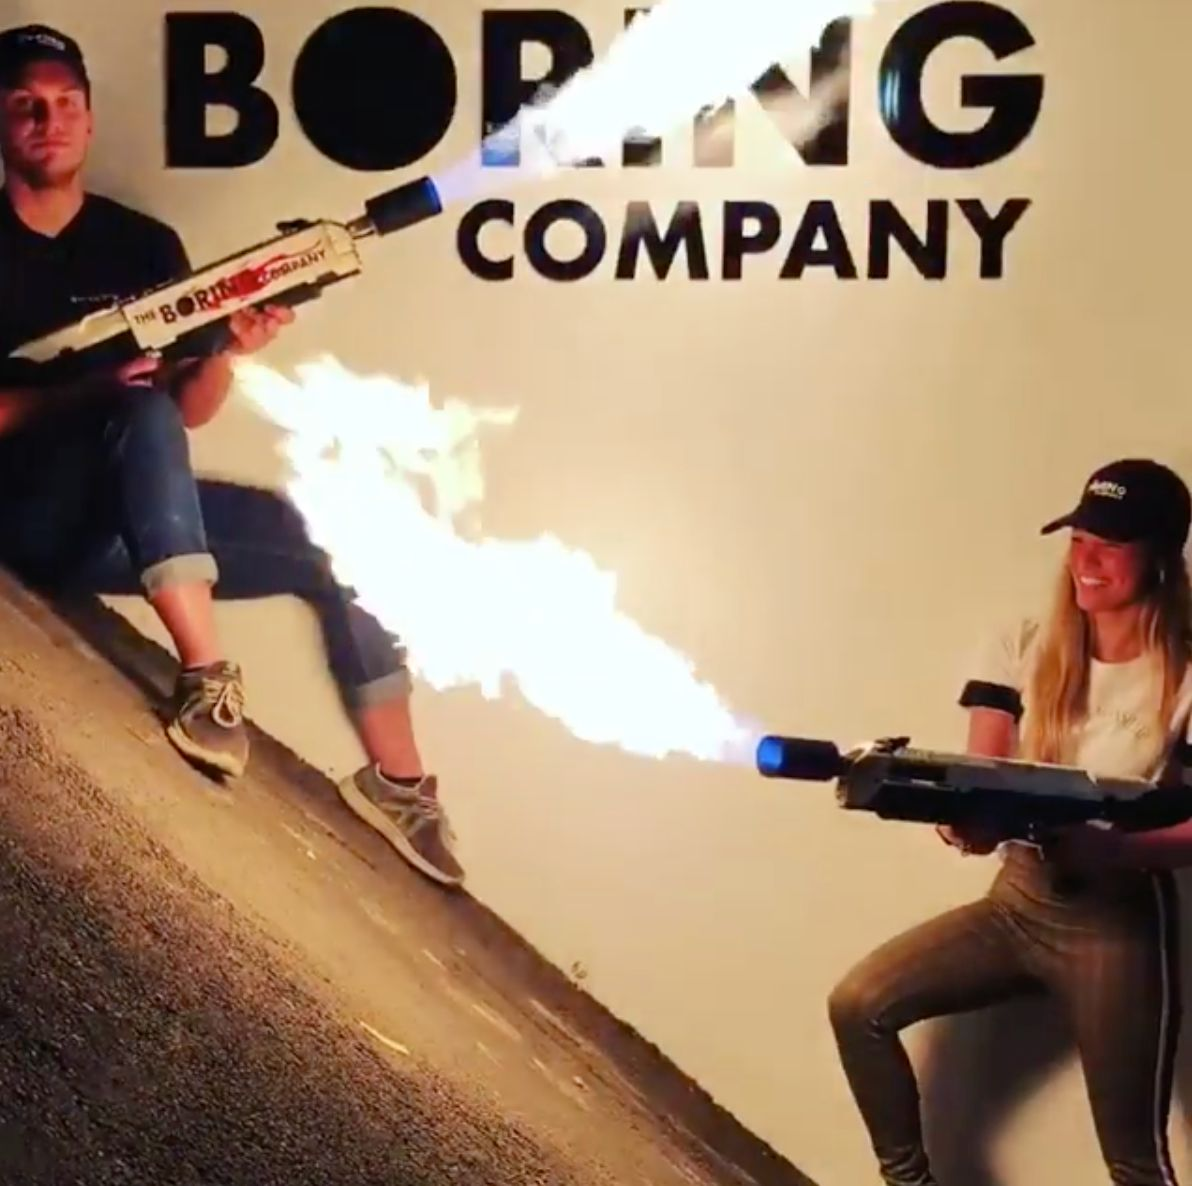 The Boring Co. flamethrowers emit a flame less than the 10 feet that would qualify them under federal regulations as an illeg